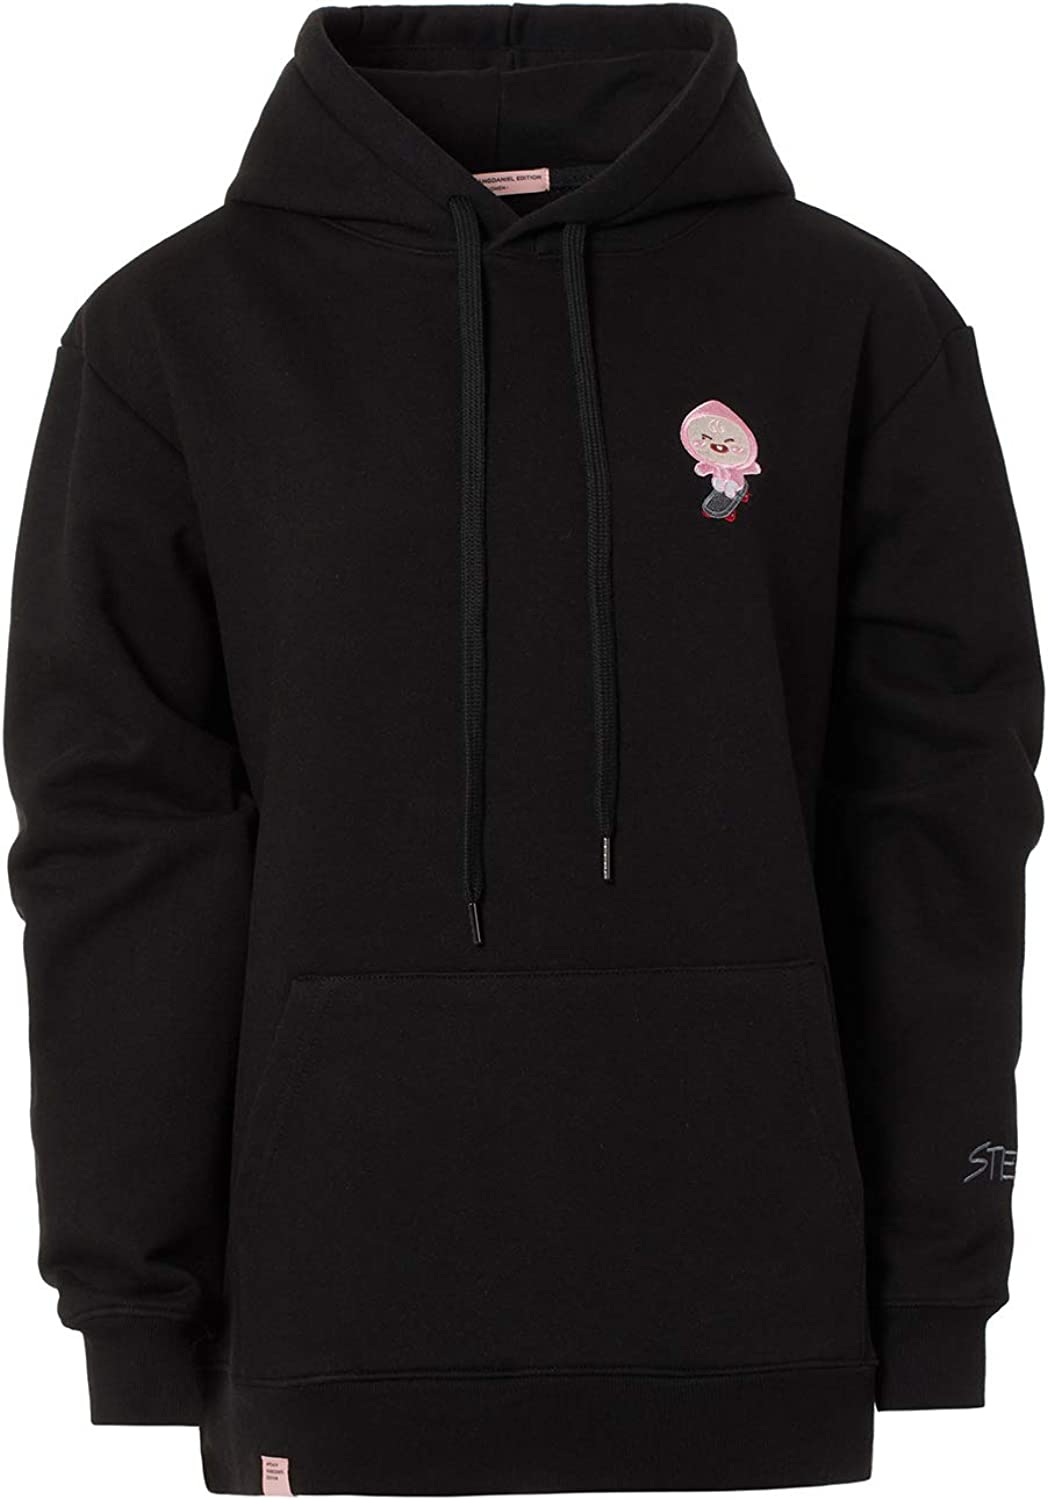 KAKAO FRIENDS Official- Apeach KangDaniel Edition Black Hoodie for Men and Women